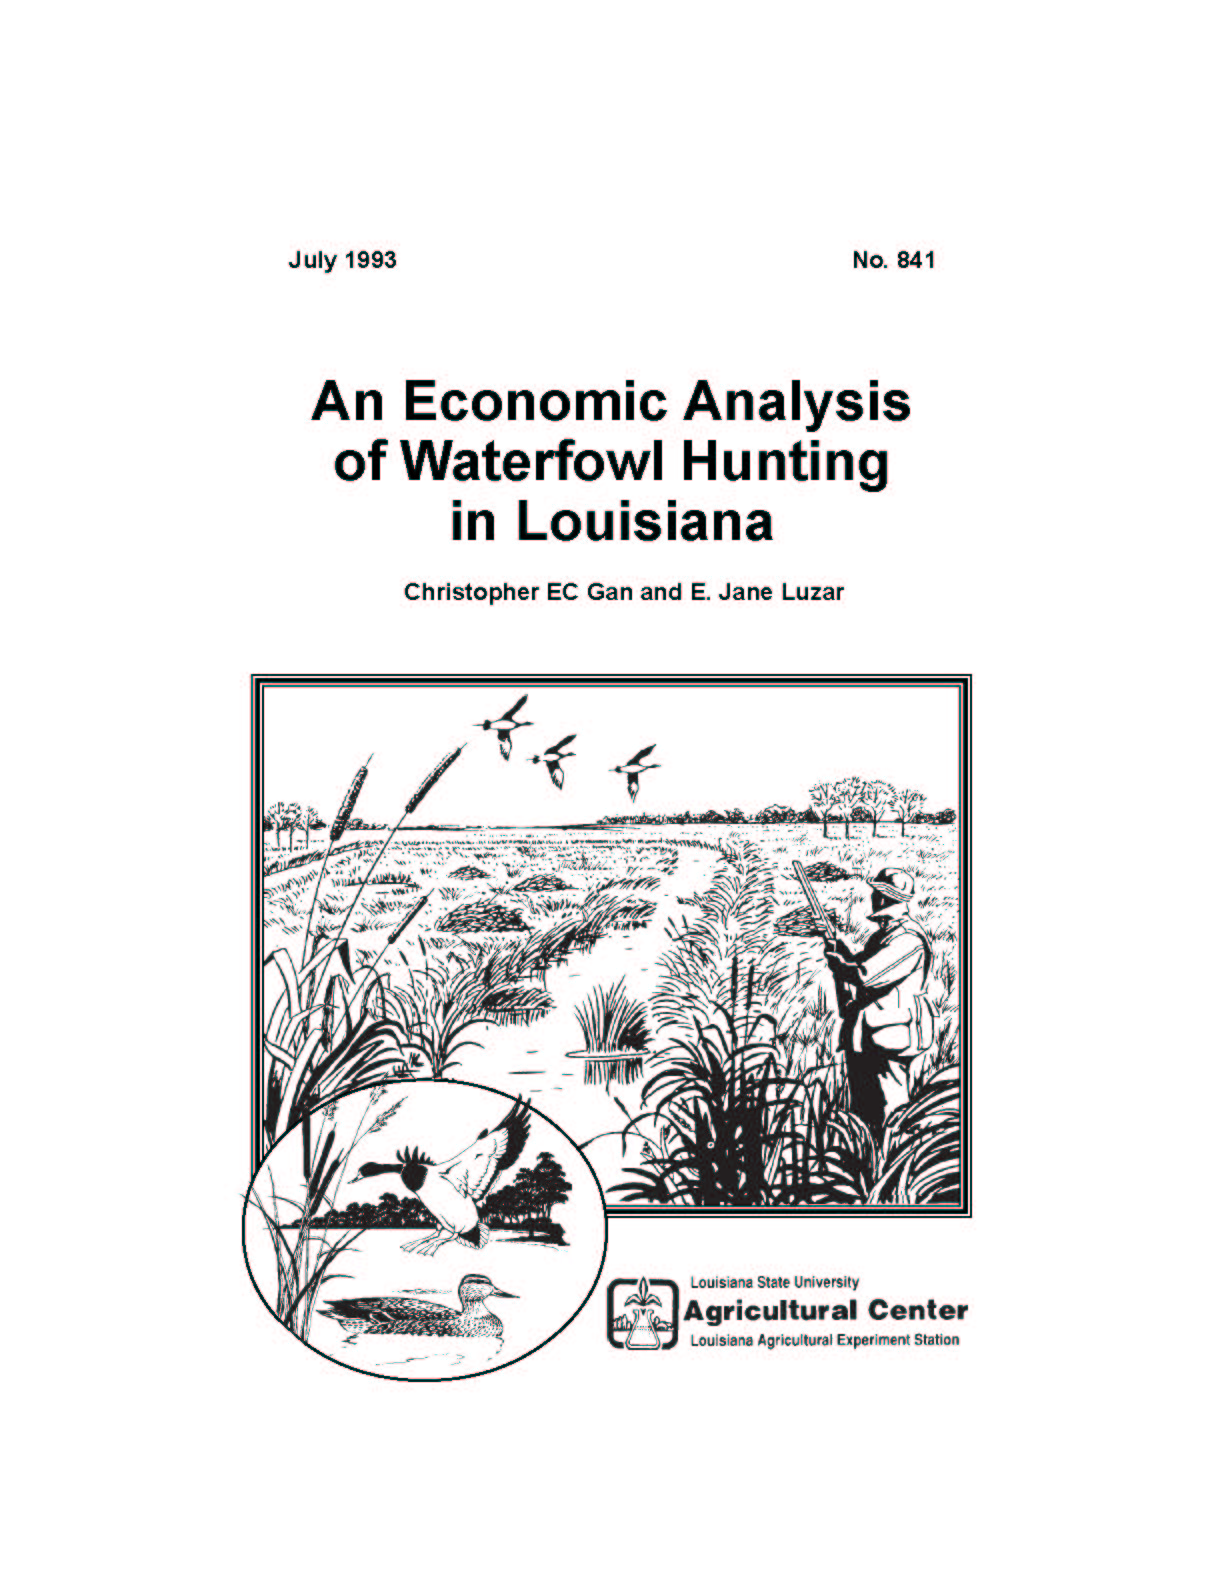 An Economic Analysis of Waterfowl Hunting in Louisiana (July 1993)